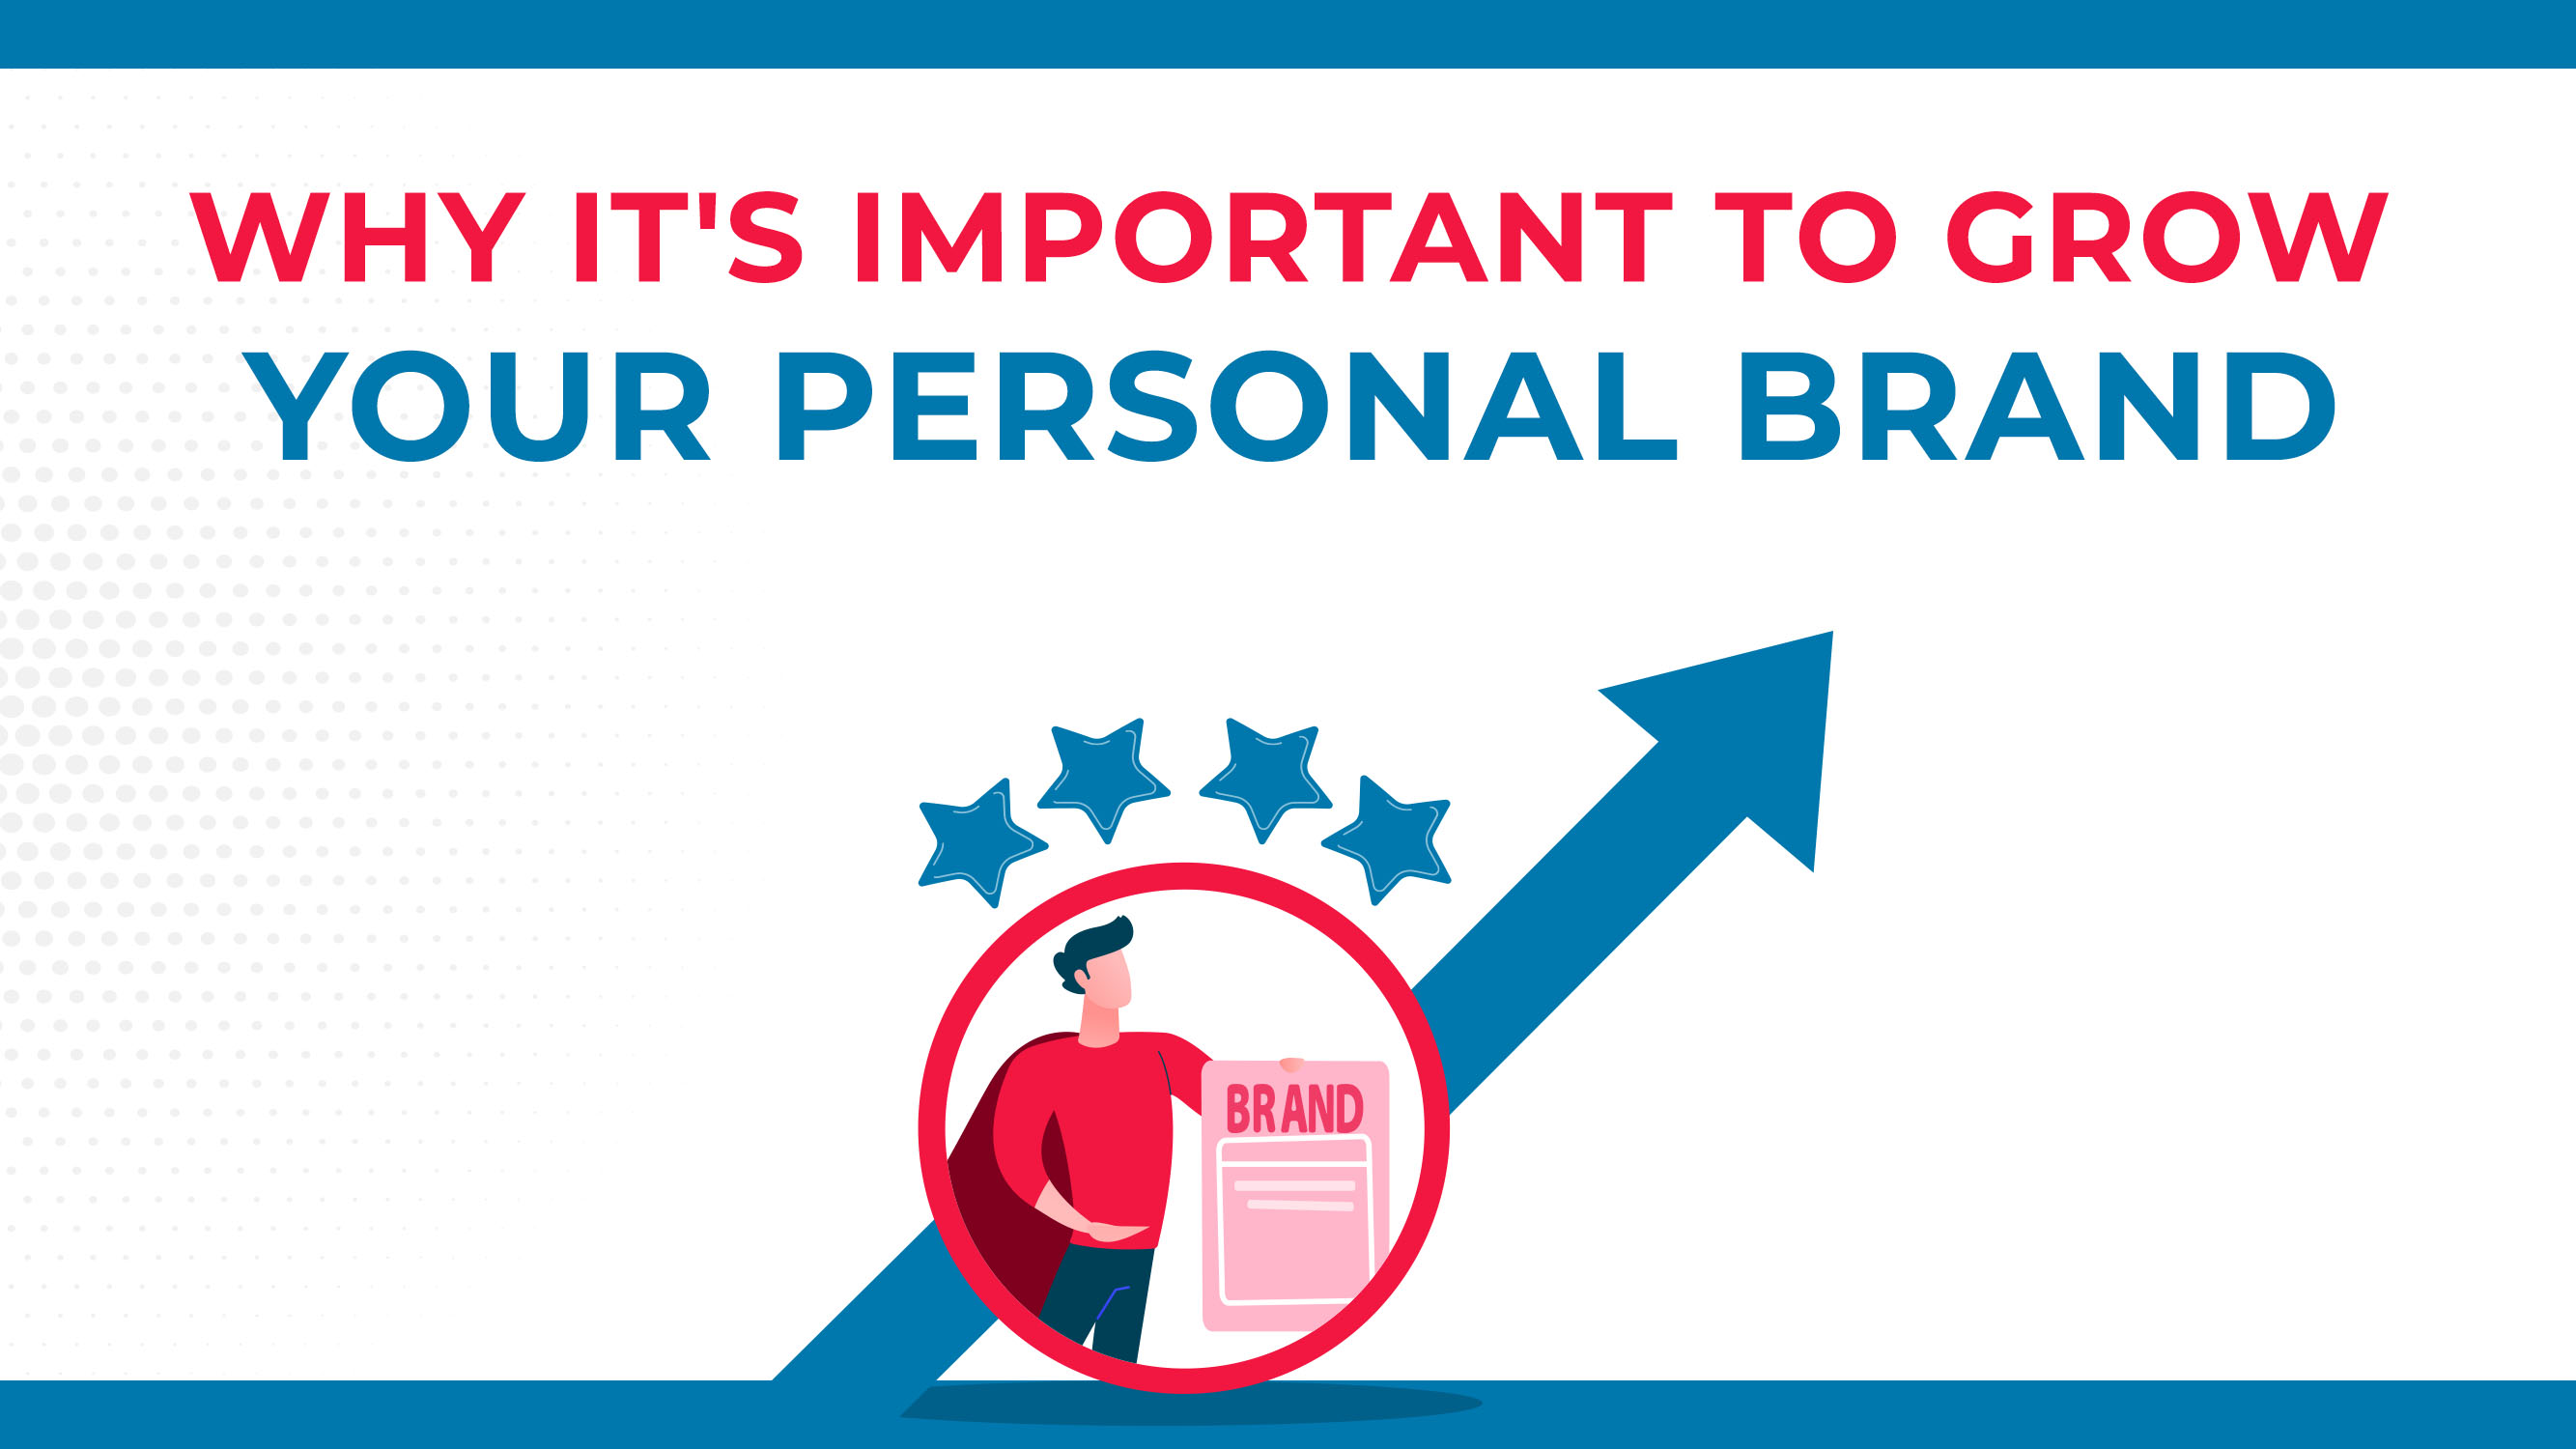 Why It's Important To Grow Your Personal Brand